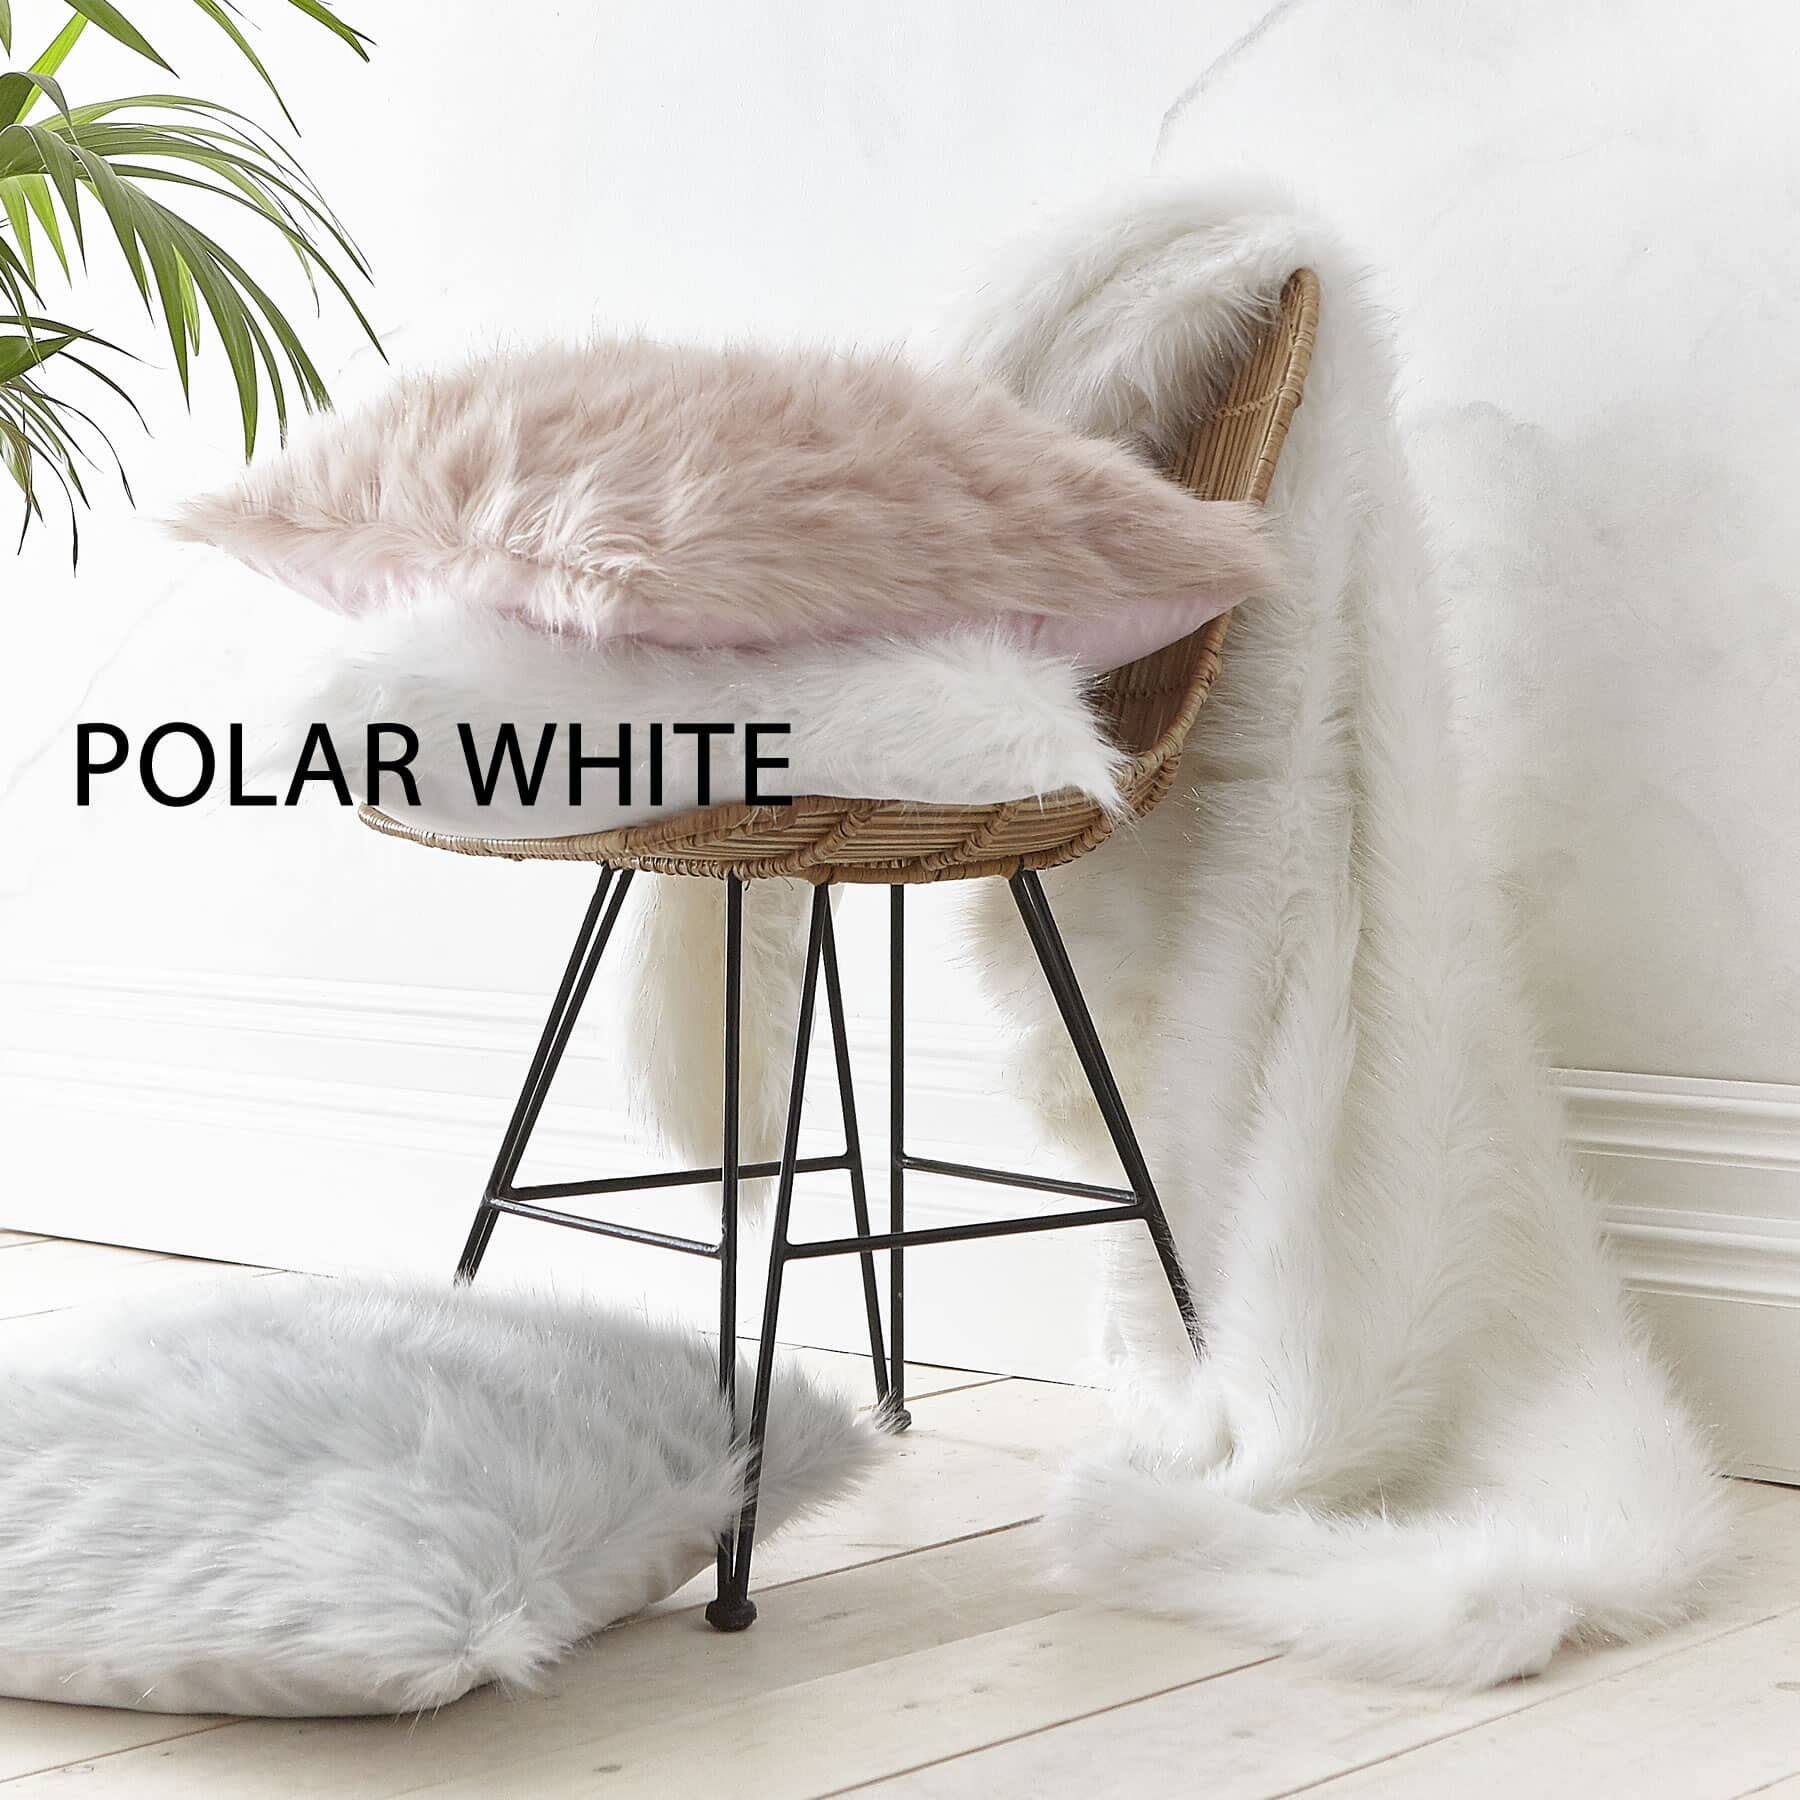 Metallic Fur Polar White